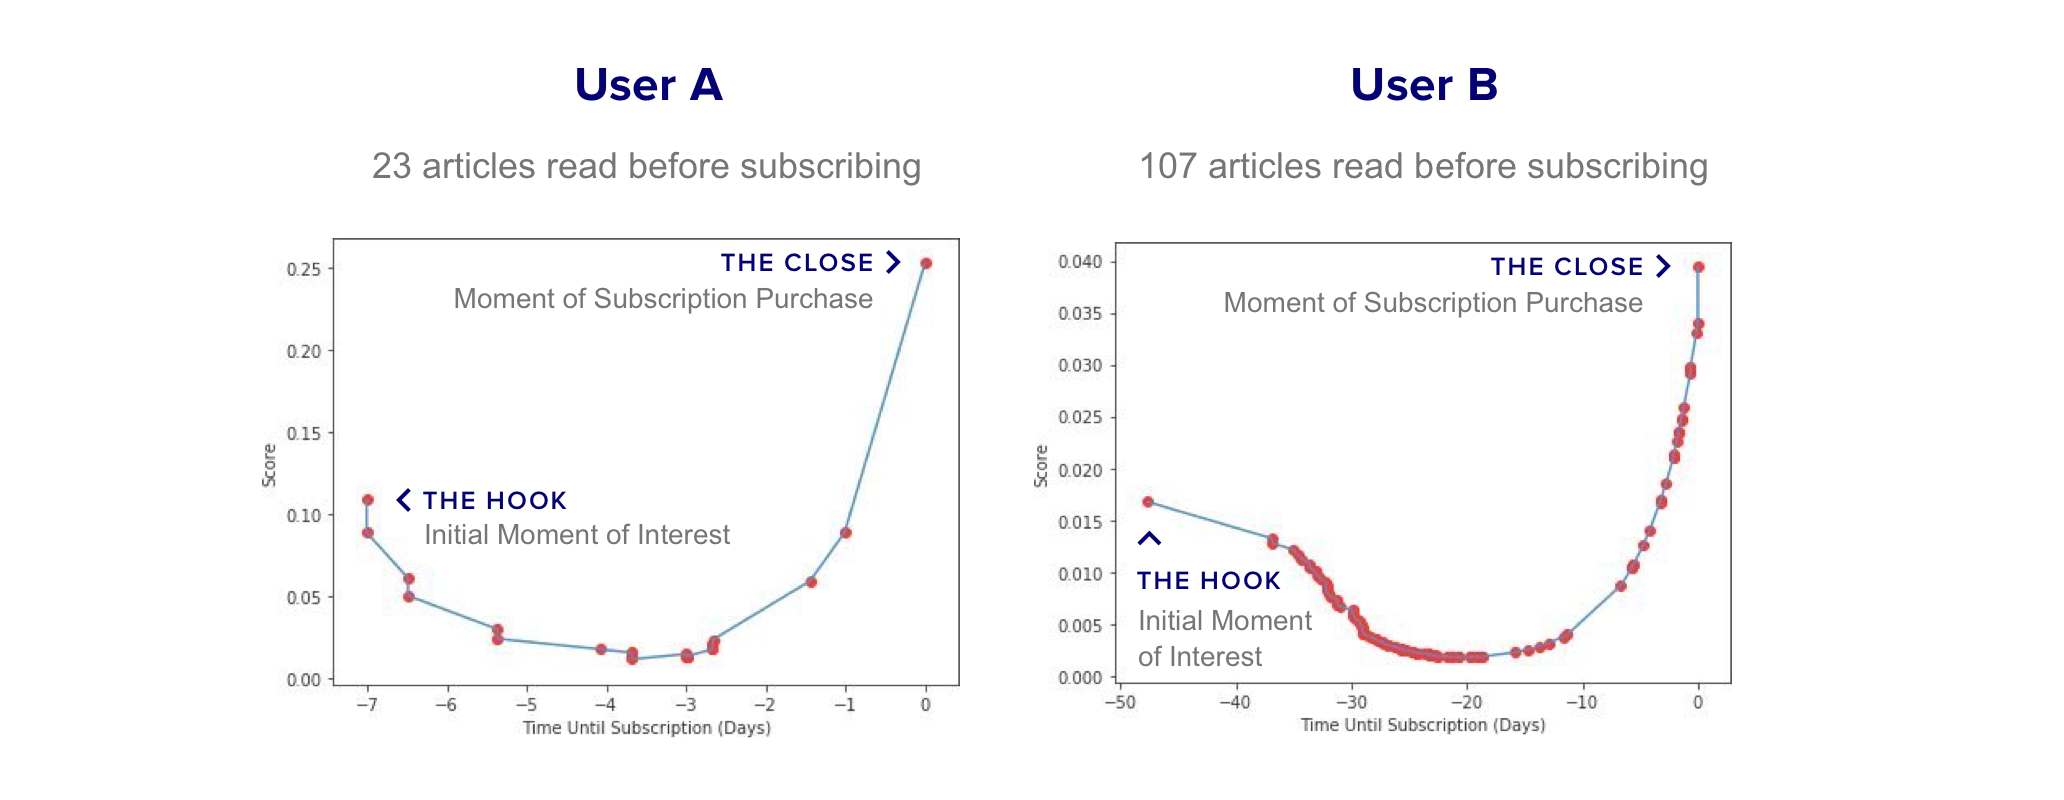 Content+Attribution+Scoring+User+Journey+for+Users+A+&+B